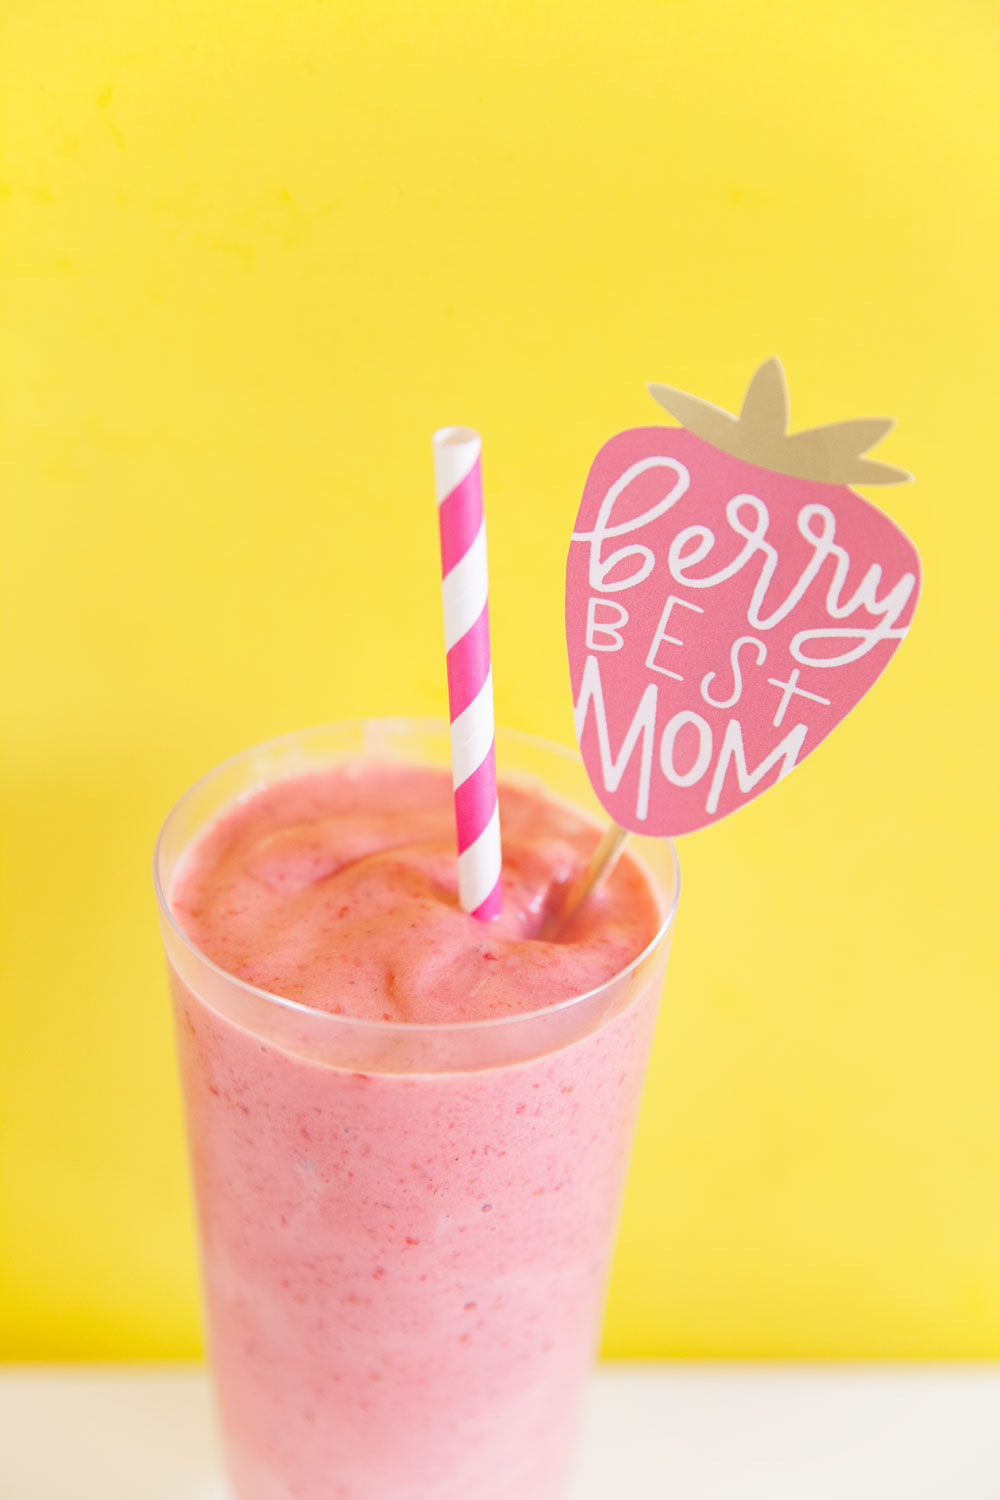 Give-mom-breakfast-in-bed-this-Mothers-Day-with-a-delicious-smoothie-and-a-free-printable-drink-stirrer